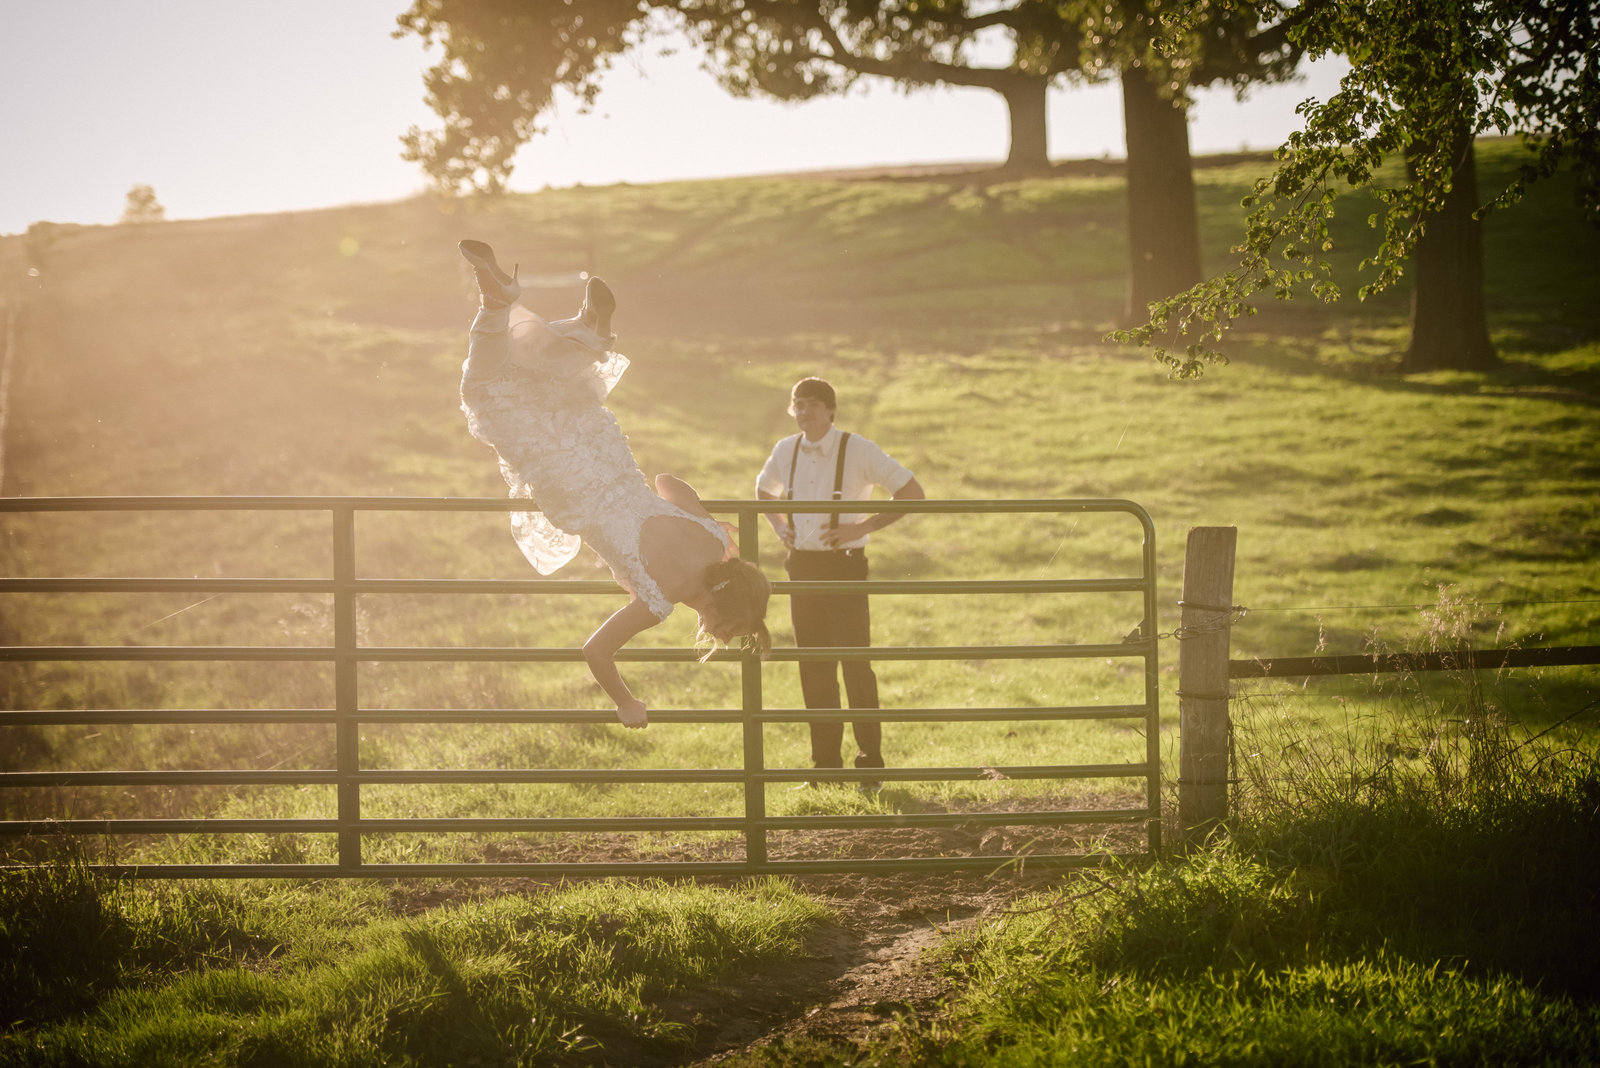 bride jumping over a fence in her wedding dress while groom watches